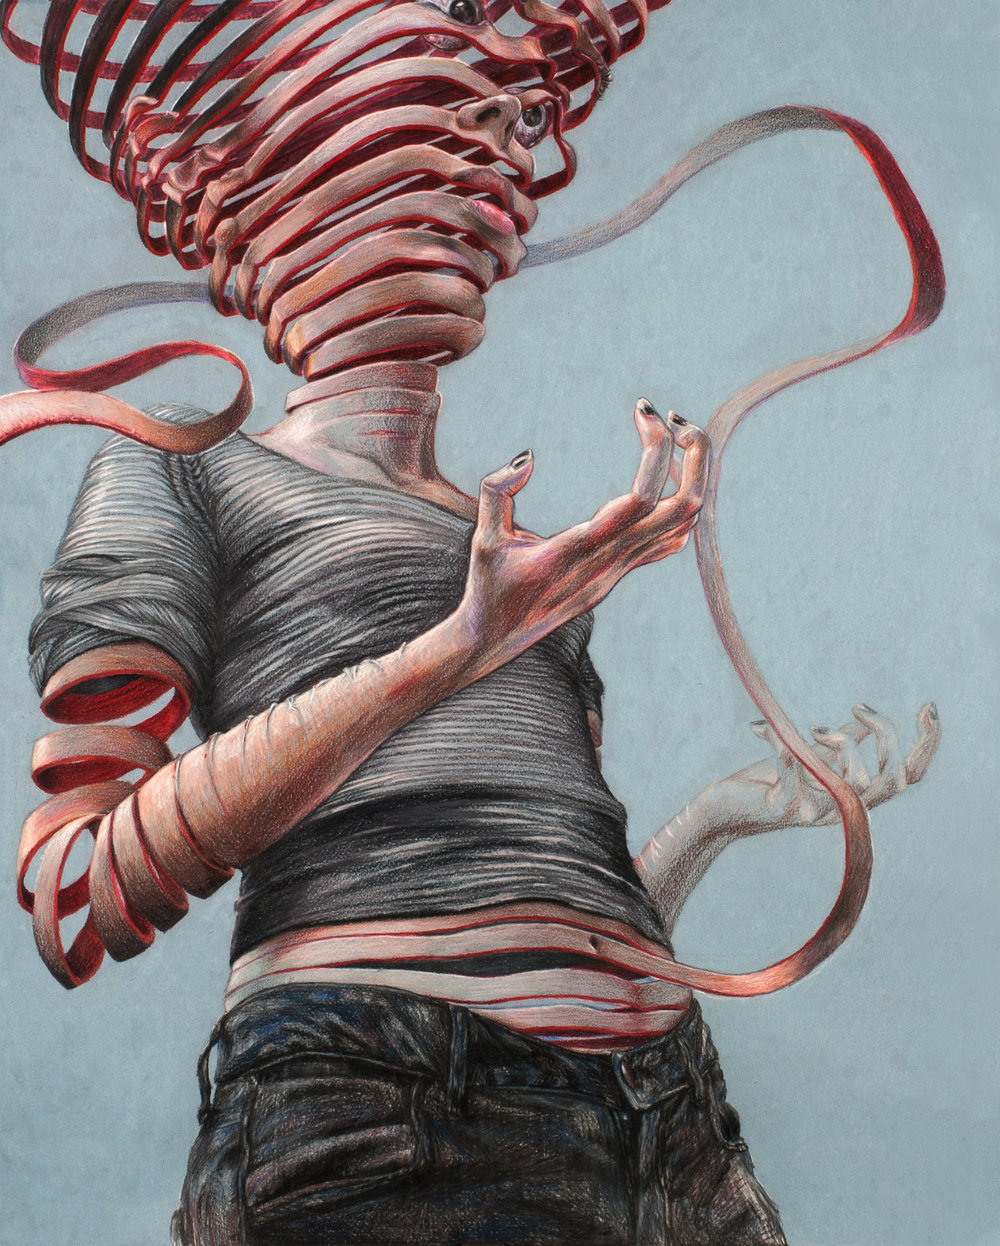 The Rhythm of Pain 19 x 25 Dec 2015 Colored Pencil EDITED for web.jpg